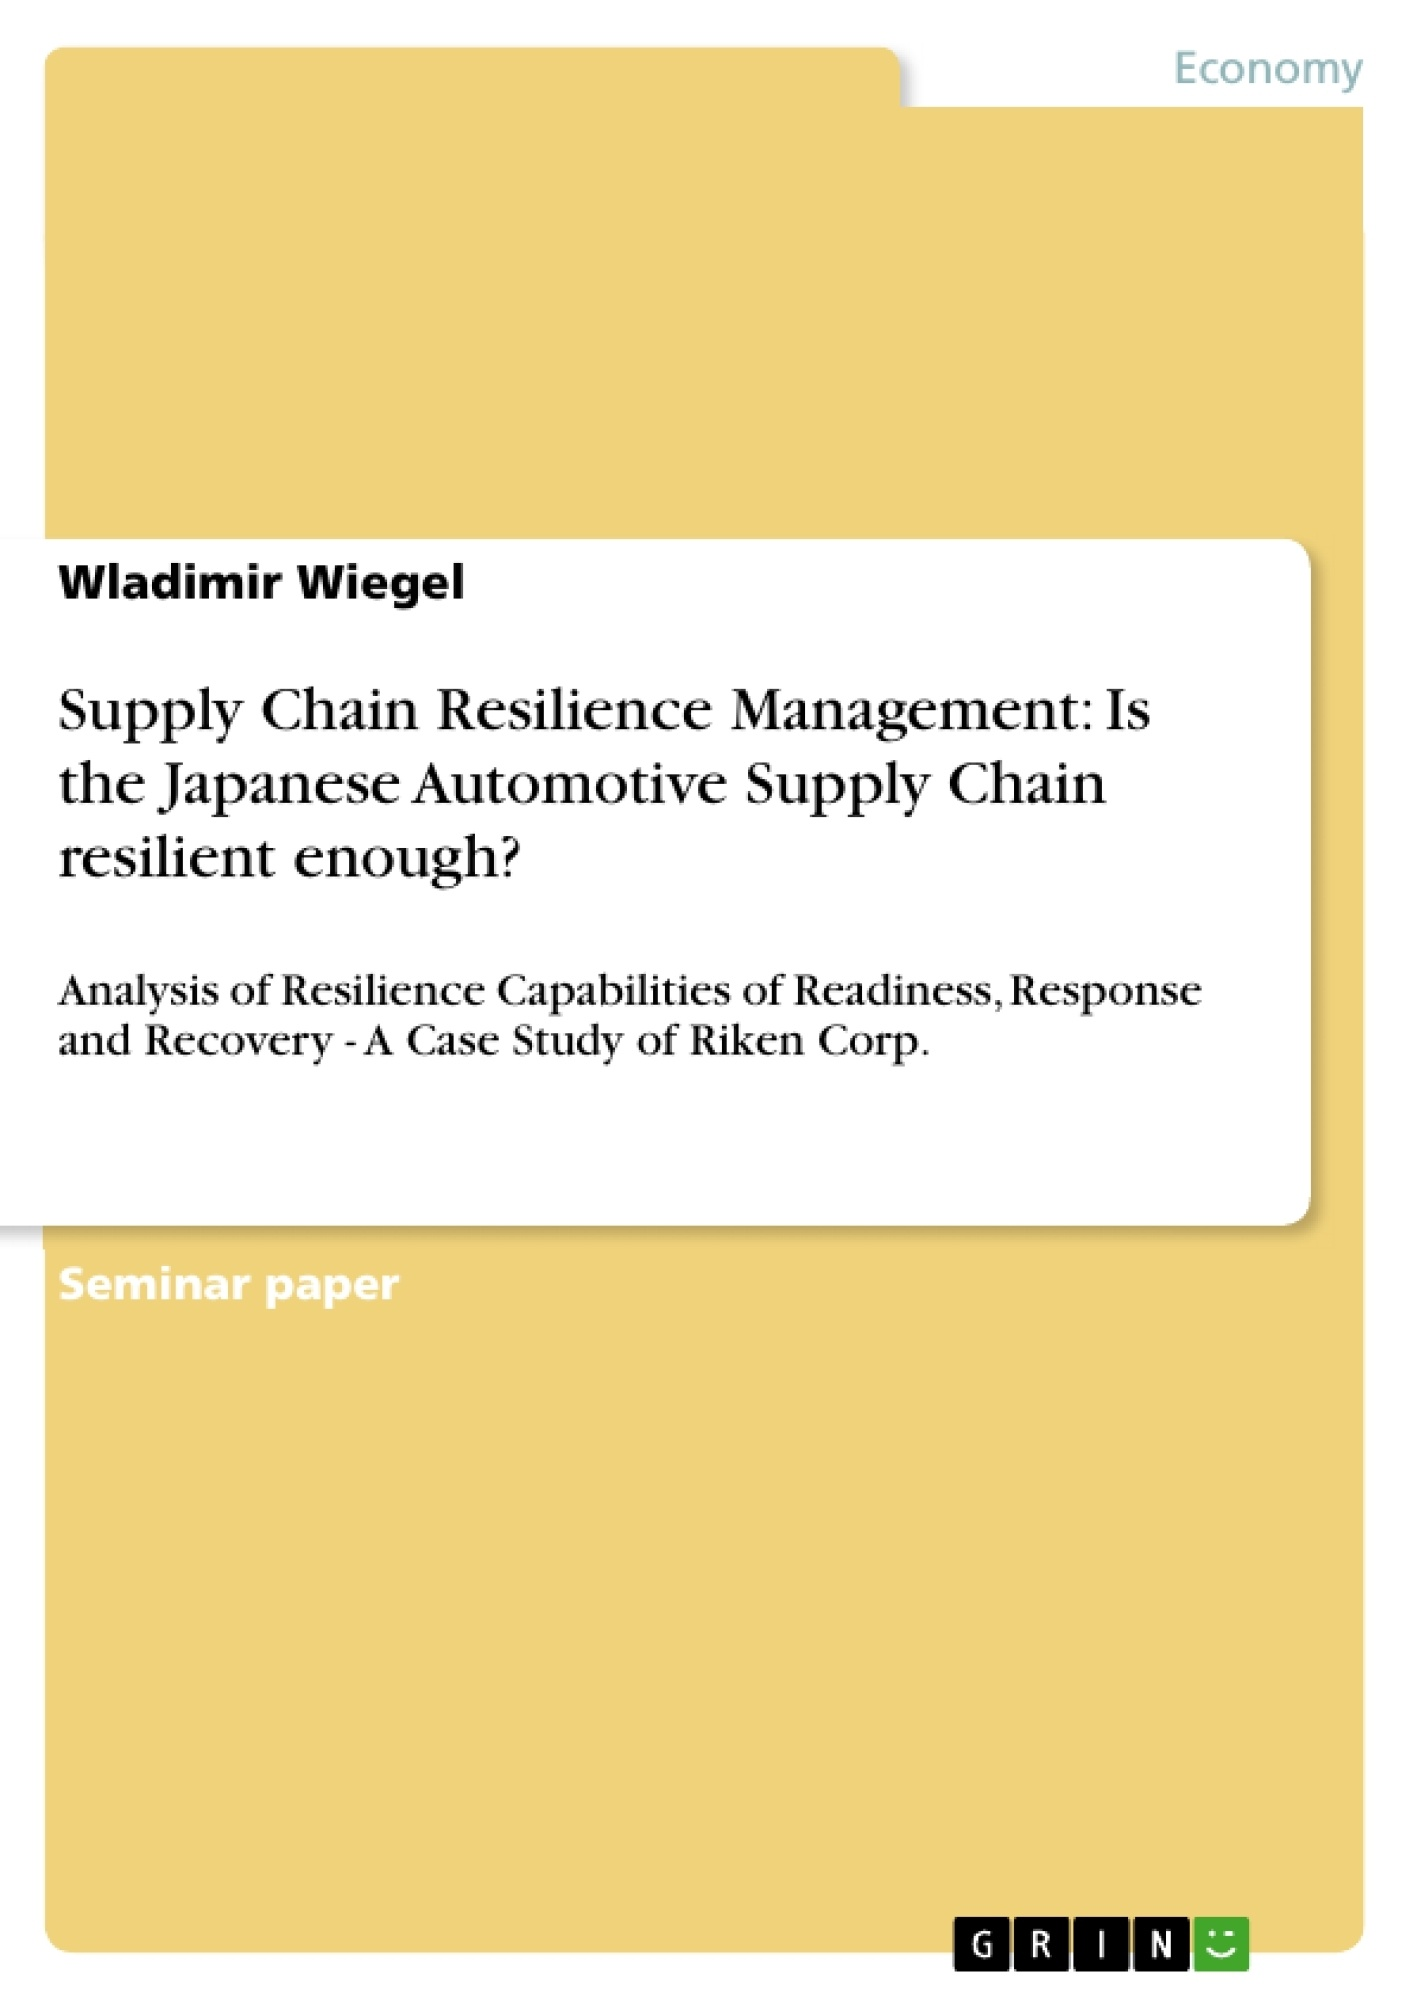 Title: Supply Chain Resilience Management: Is the Japanese Automotive Supply Chain resilient enough?